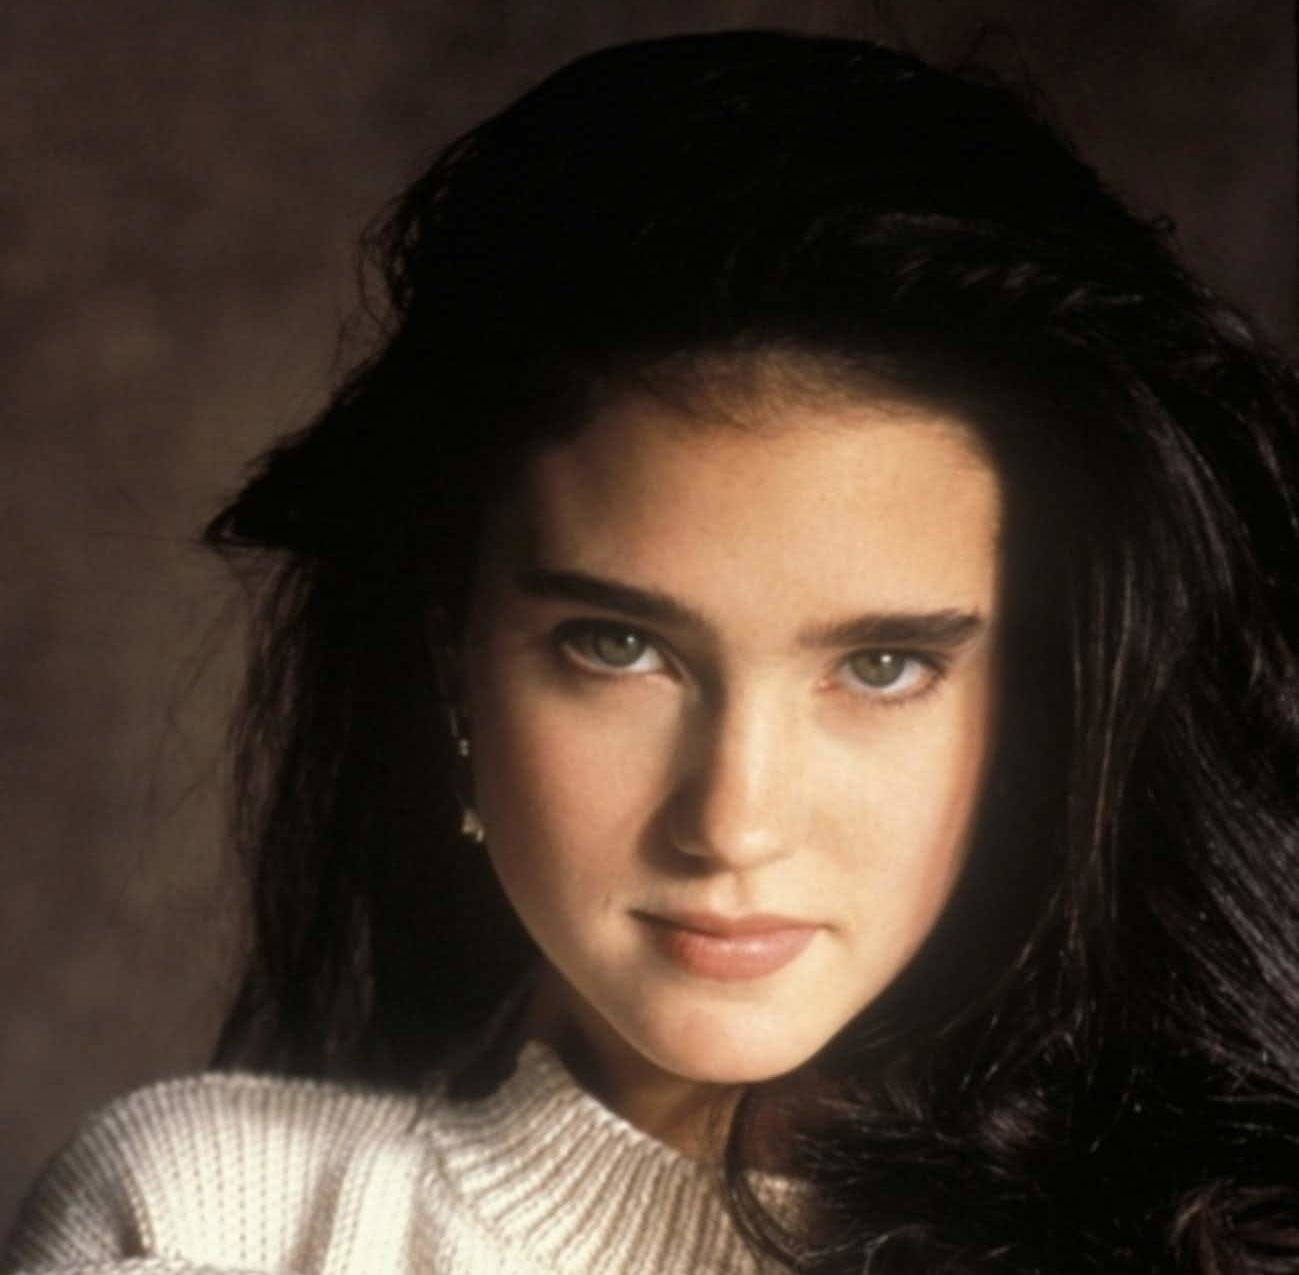 young jennifer connelly in white turtleneck sweater photo u1 e1610012899250 20 Things You Probably Didn't Know About Jennifer Connelly